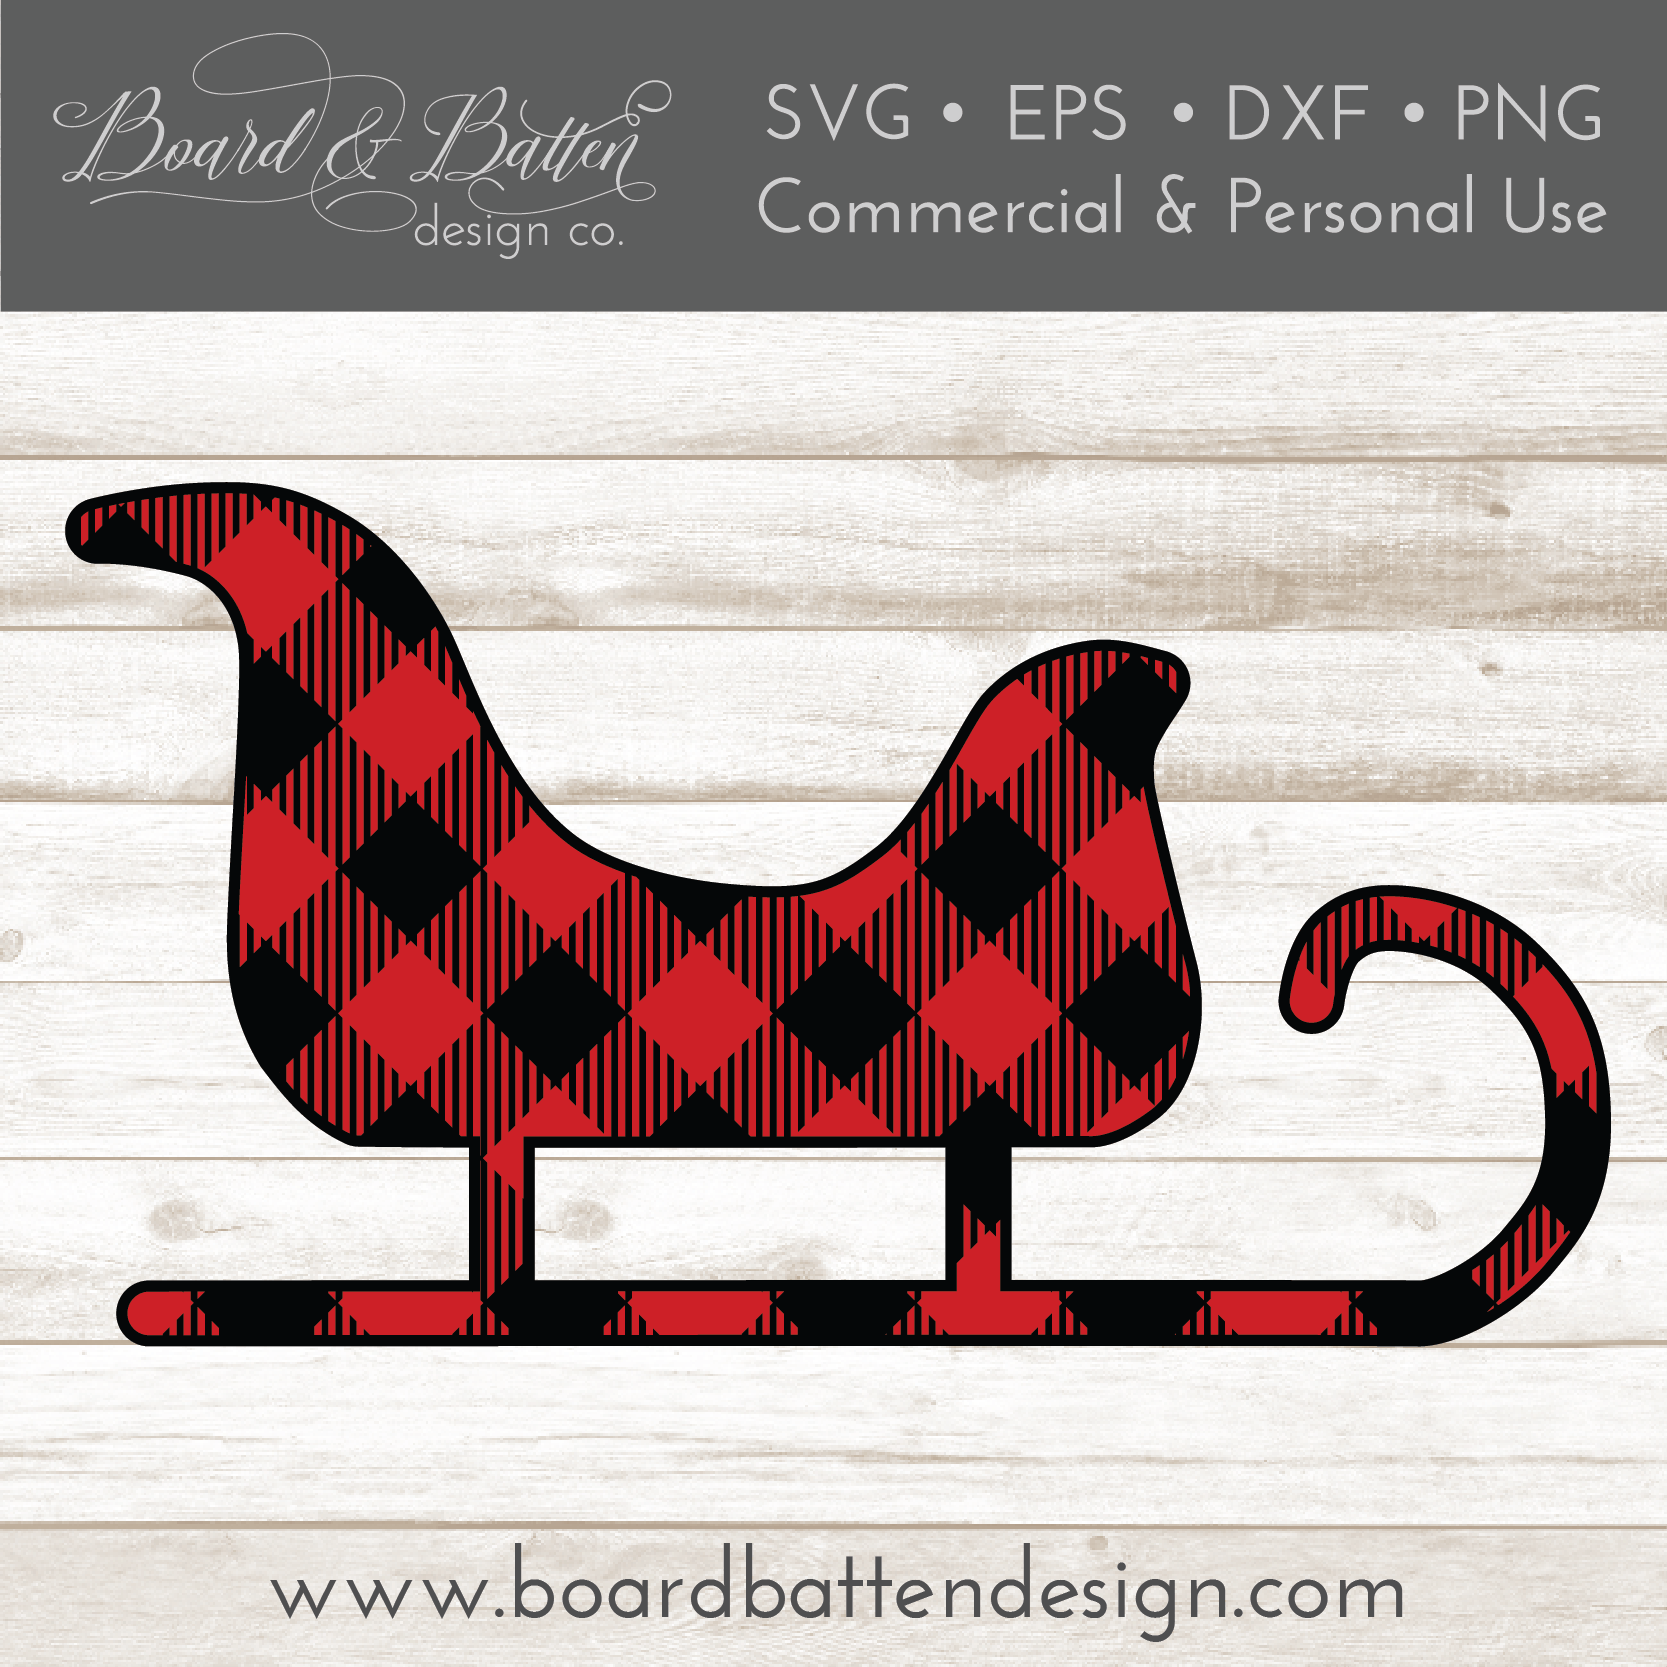 Buffalo Plaid Sleigh Shape Layered SVG - Commercial Use SVG Files